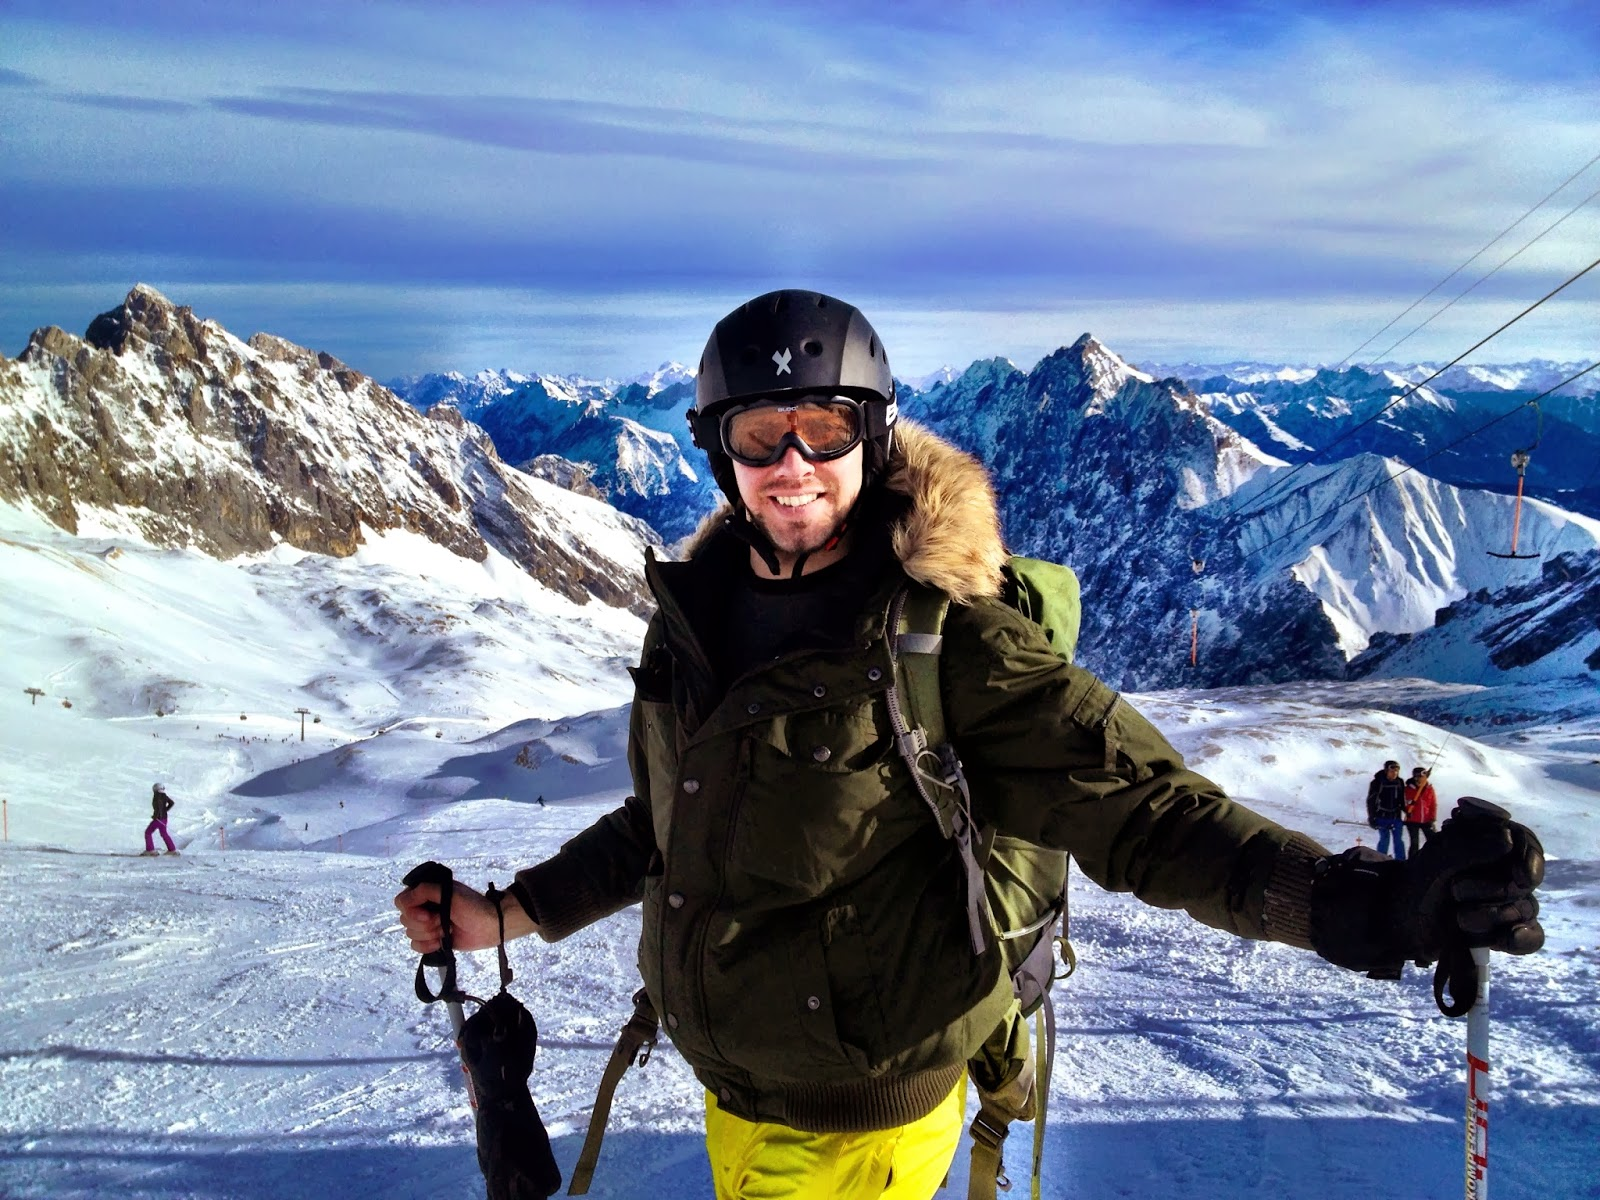 Simon on the ski slopes of the Zugspitze, Germany